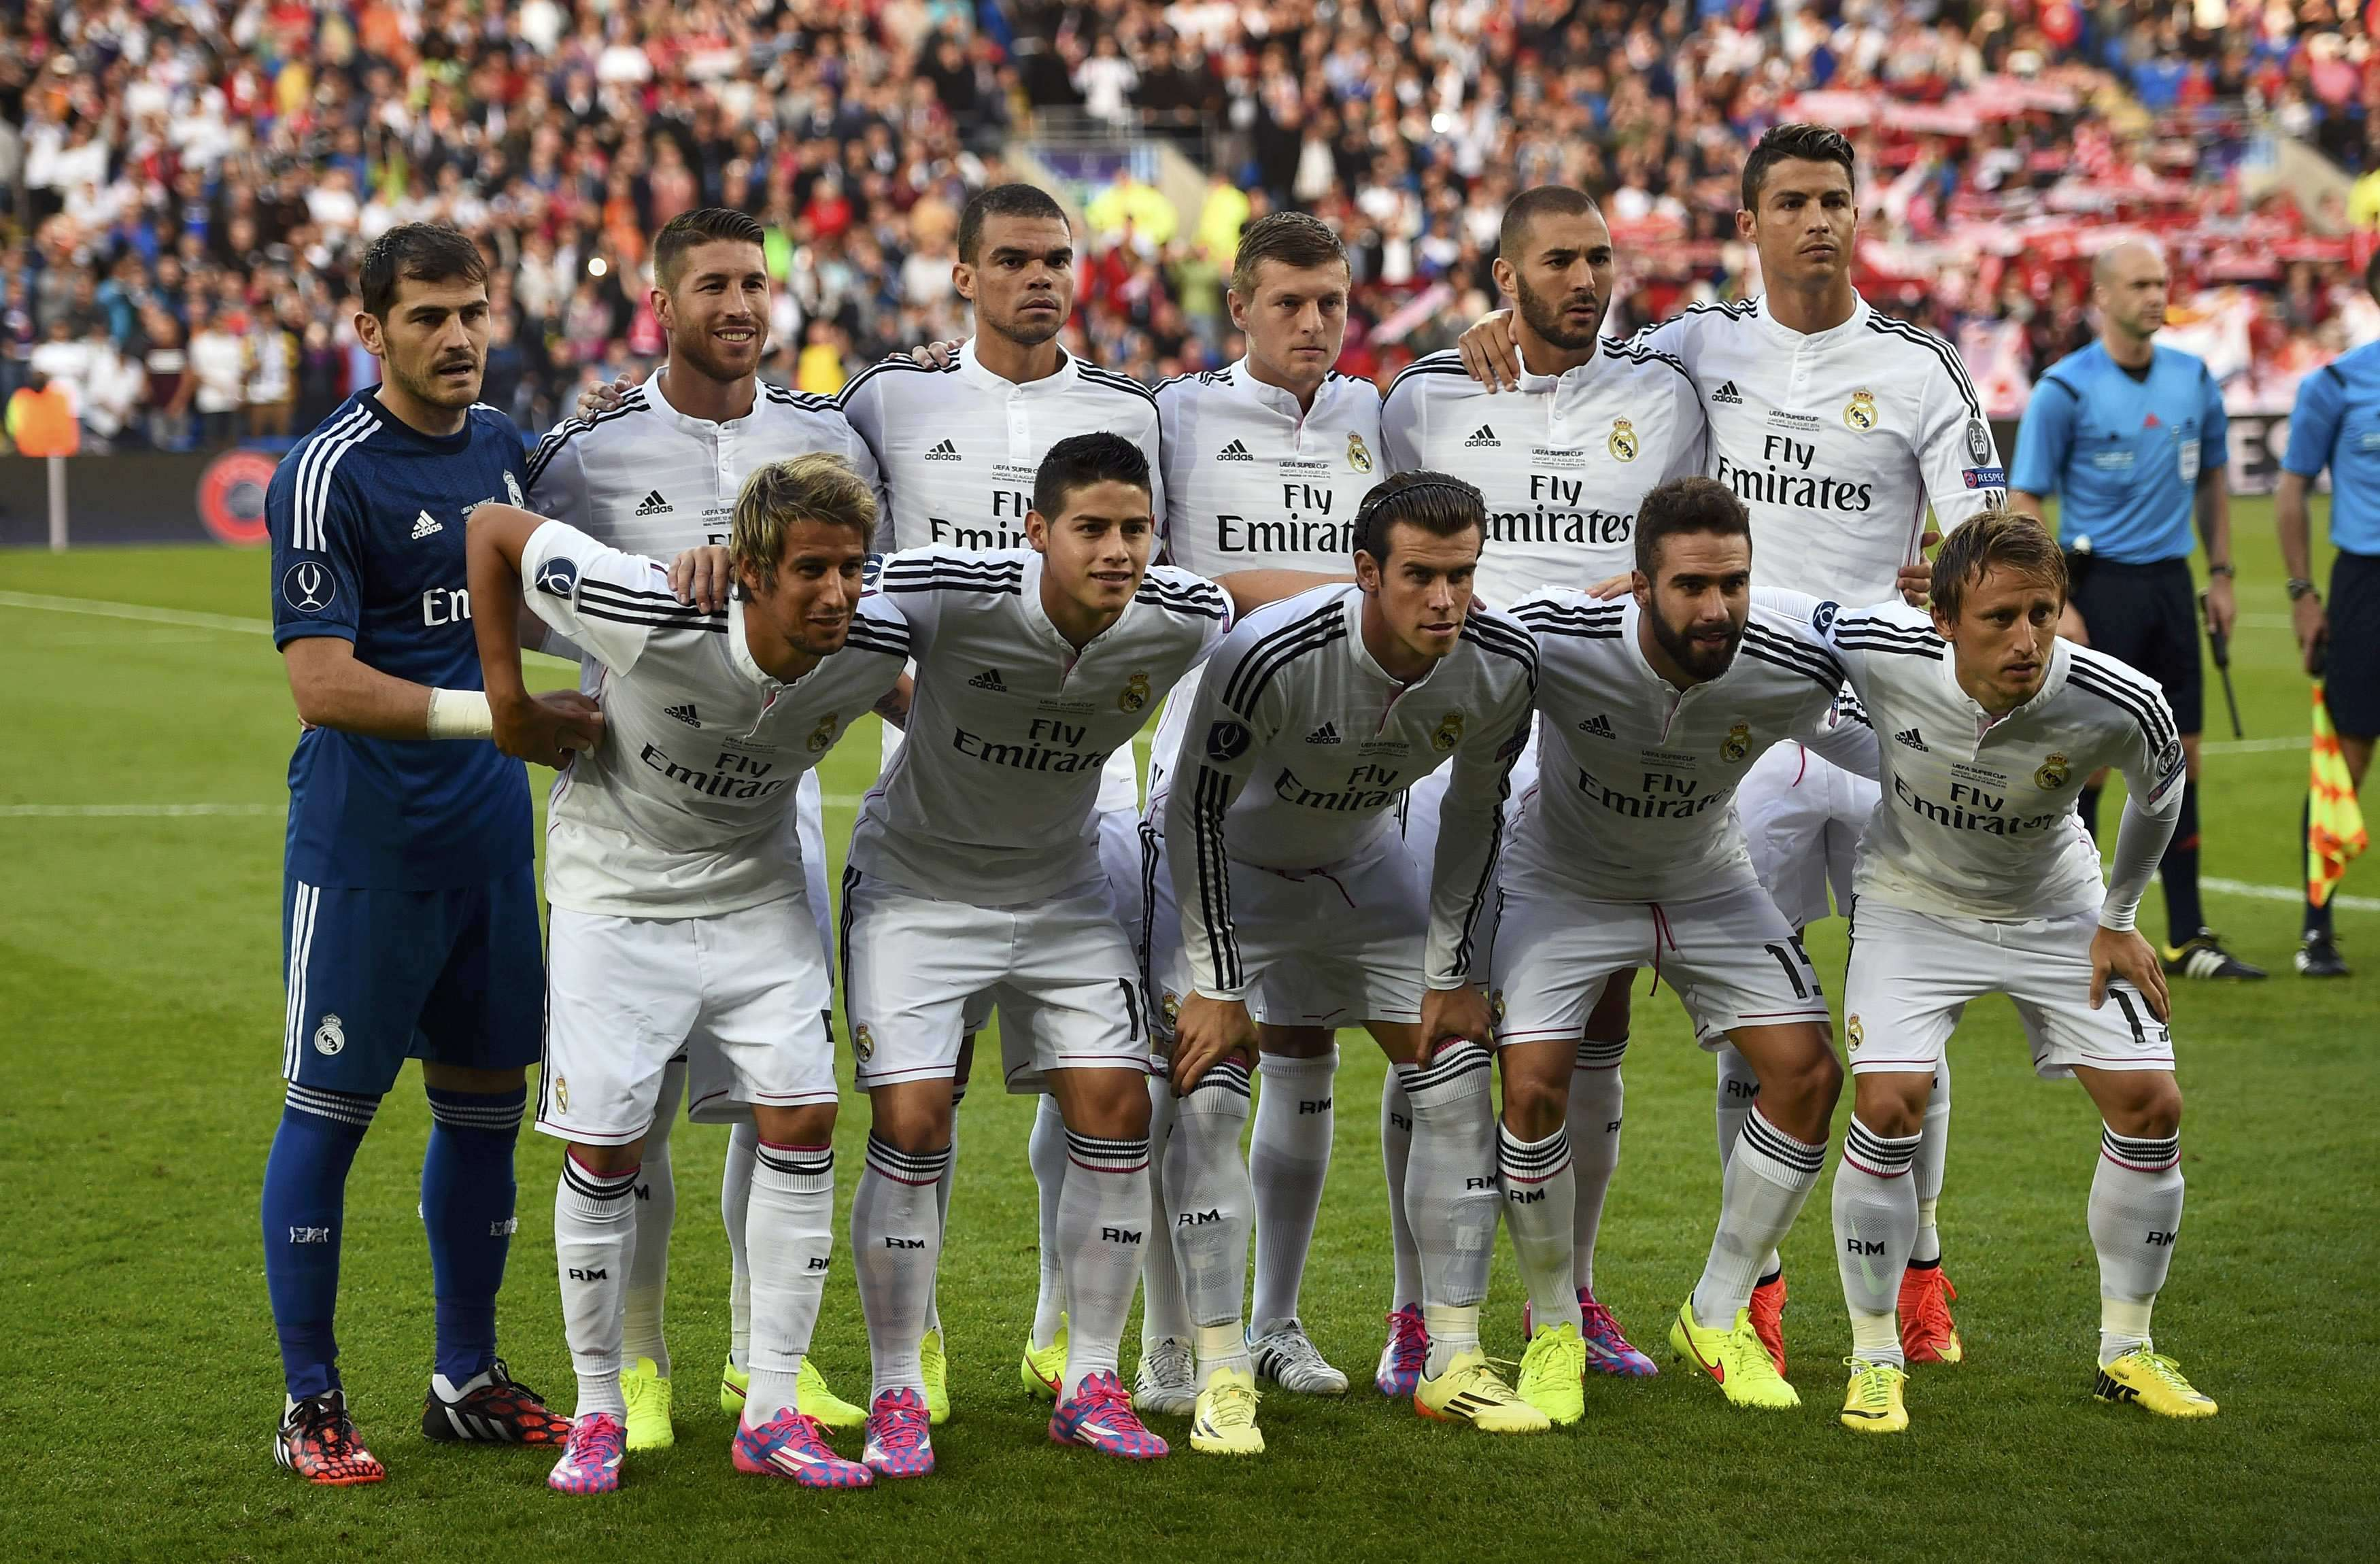 Real Madrid's players pose for team picture before the UEFA Super Cup final soccer match against Sevilla at Cardiff City stadium, Wales, August 12, 2014. REUTERS/Rebecca Naden (BRITAIN - Tags: SPORT SOCCER) Foto: DYLAN MARTINEZ/REUTERS